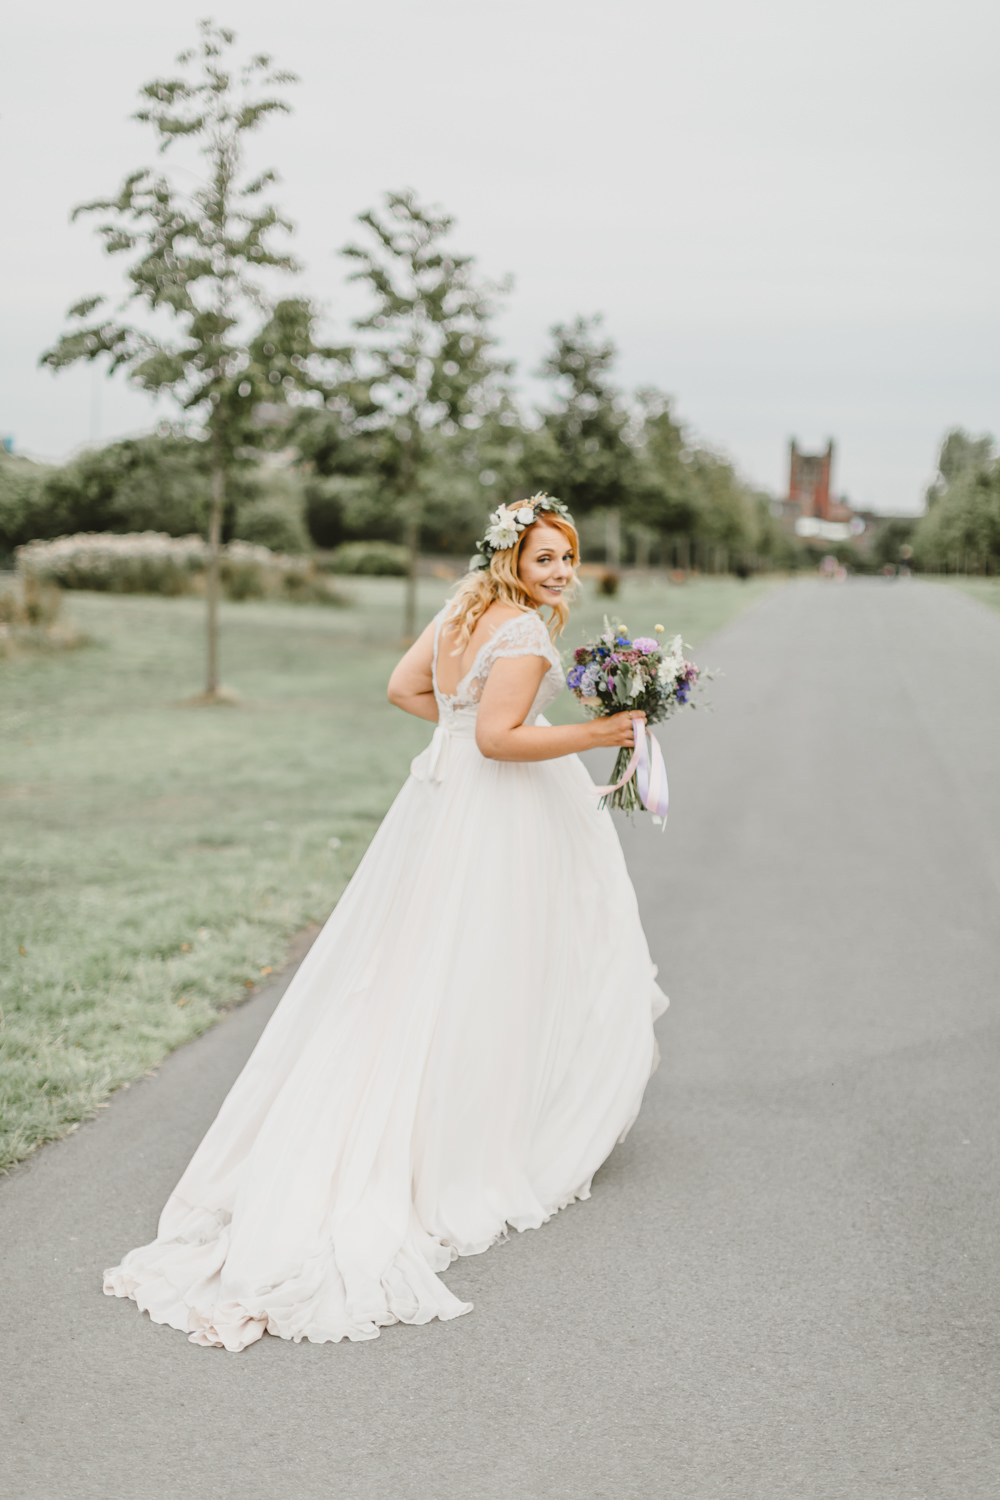 Dress Gown Bride Bridal Naomi Neoh A Line Lace Top Cap Sleeves Train Wylam Brewery Wedding Amy Lou Photography